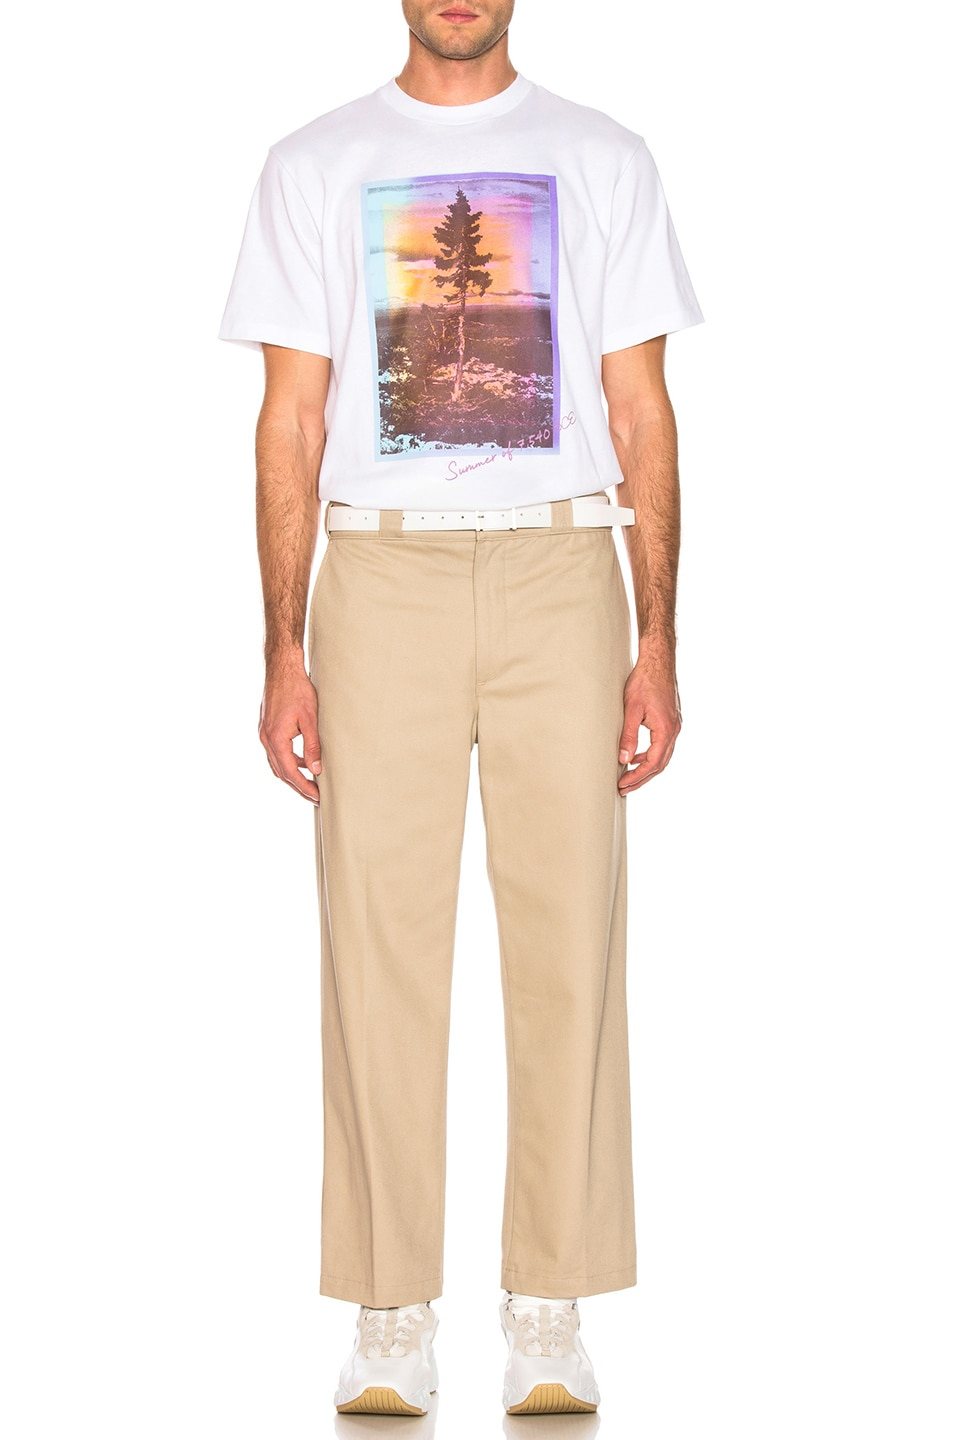 Image 5 of Acne Studios Jaceye Sweden Graphic Tee in White